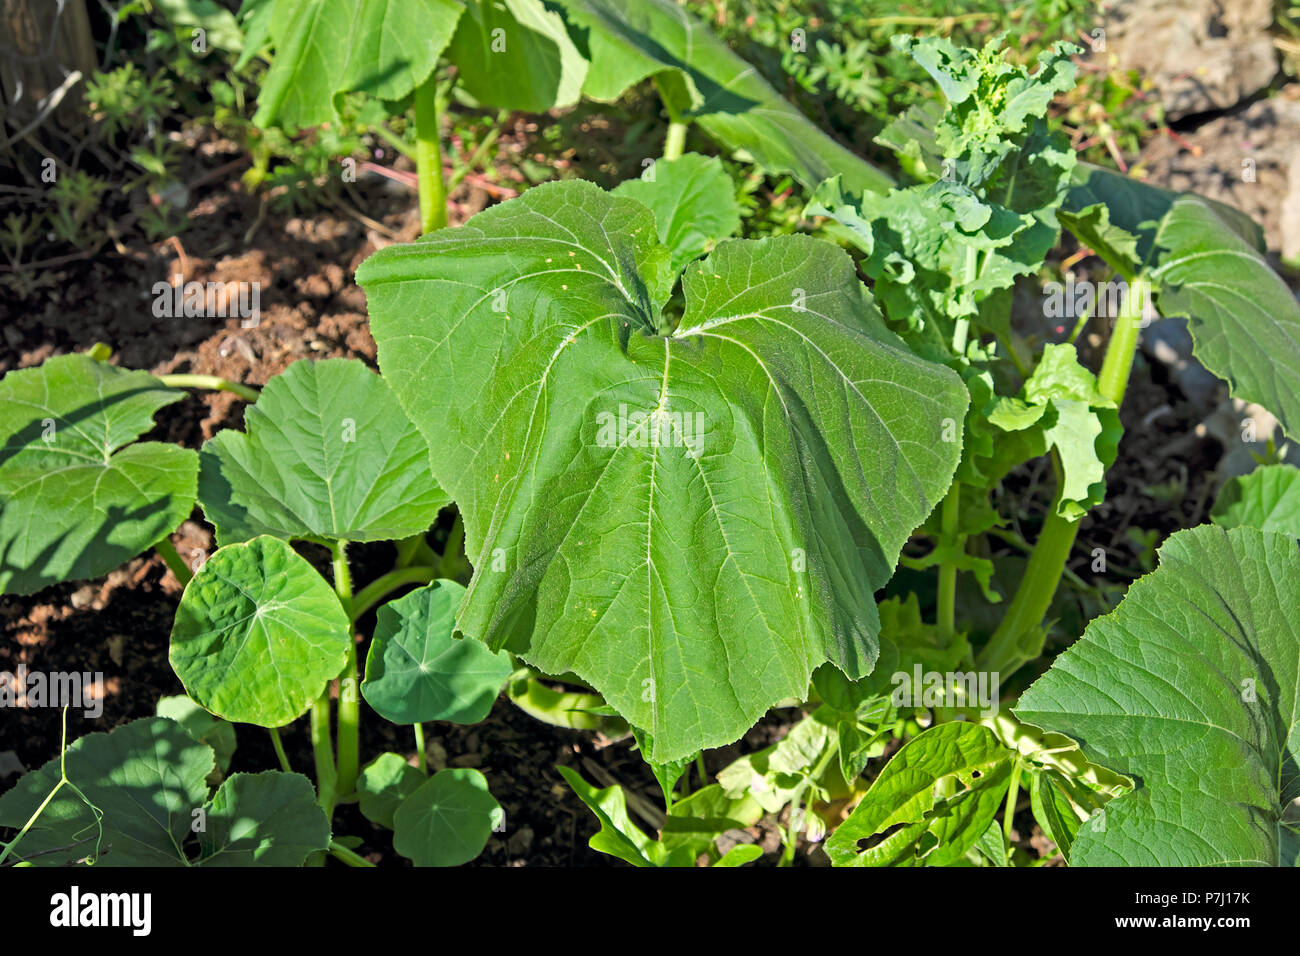 Squash plant growing in the garden wilting in the heatwave on a hot summer day in June 2018 West Wales UK  KATHY DEWITT - Stock Image